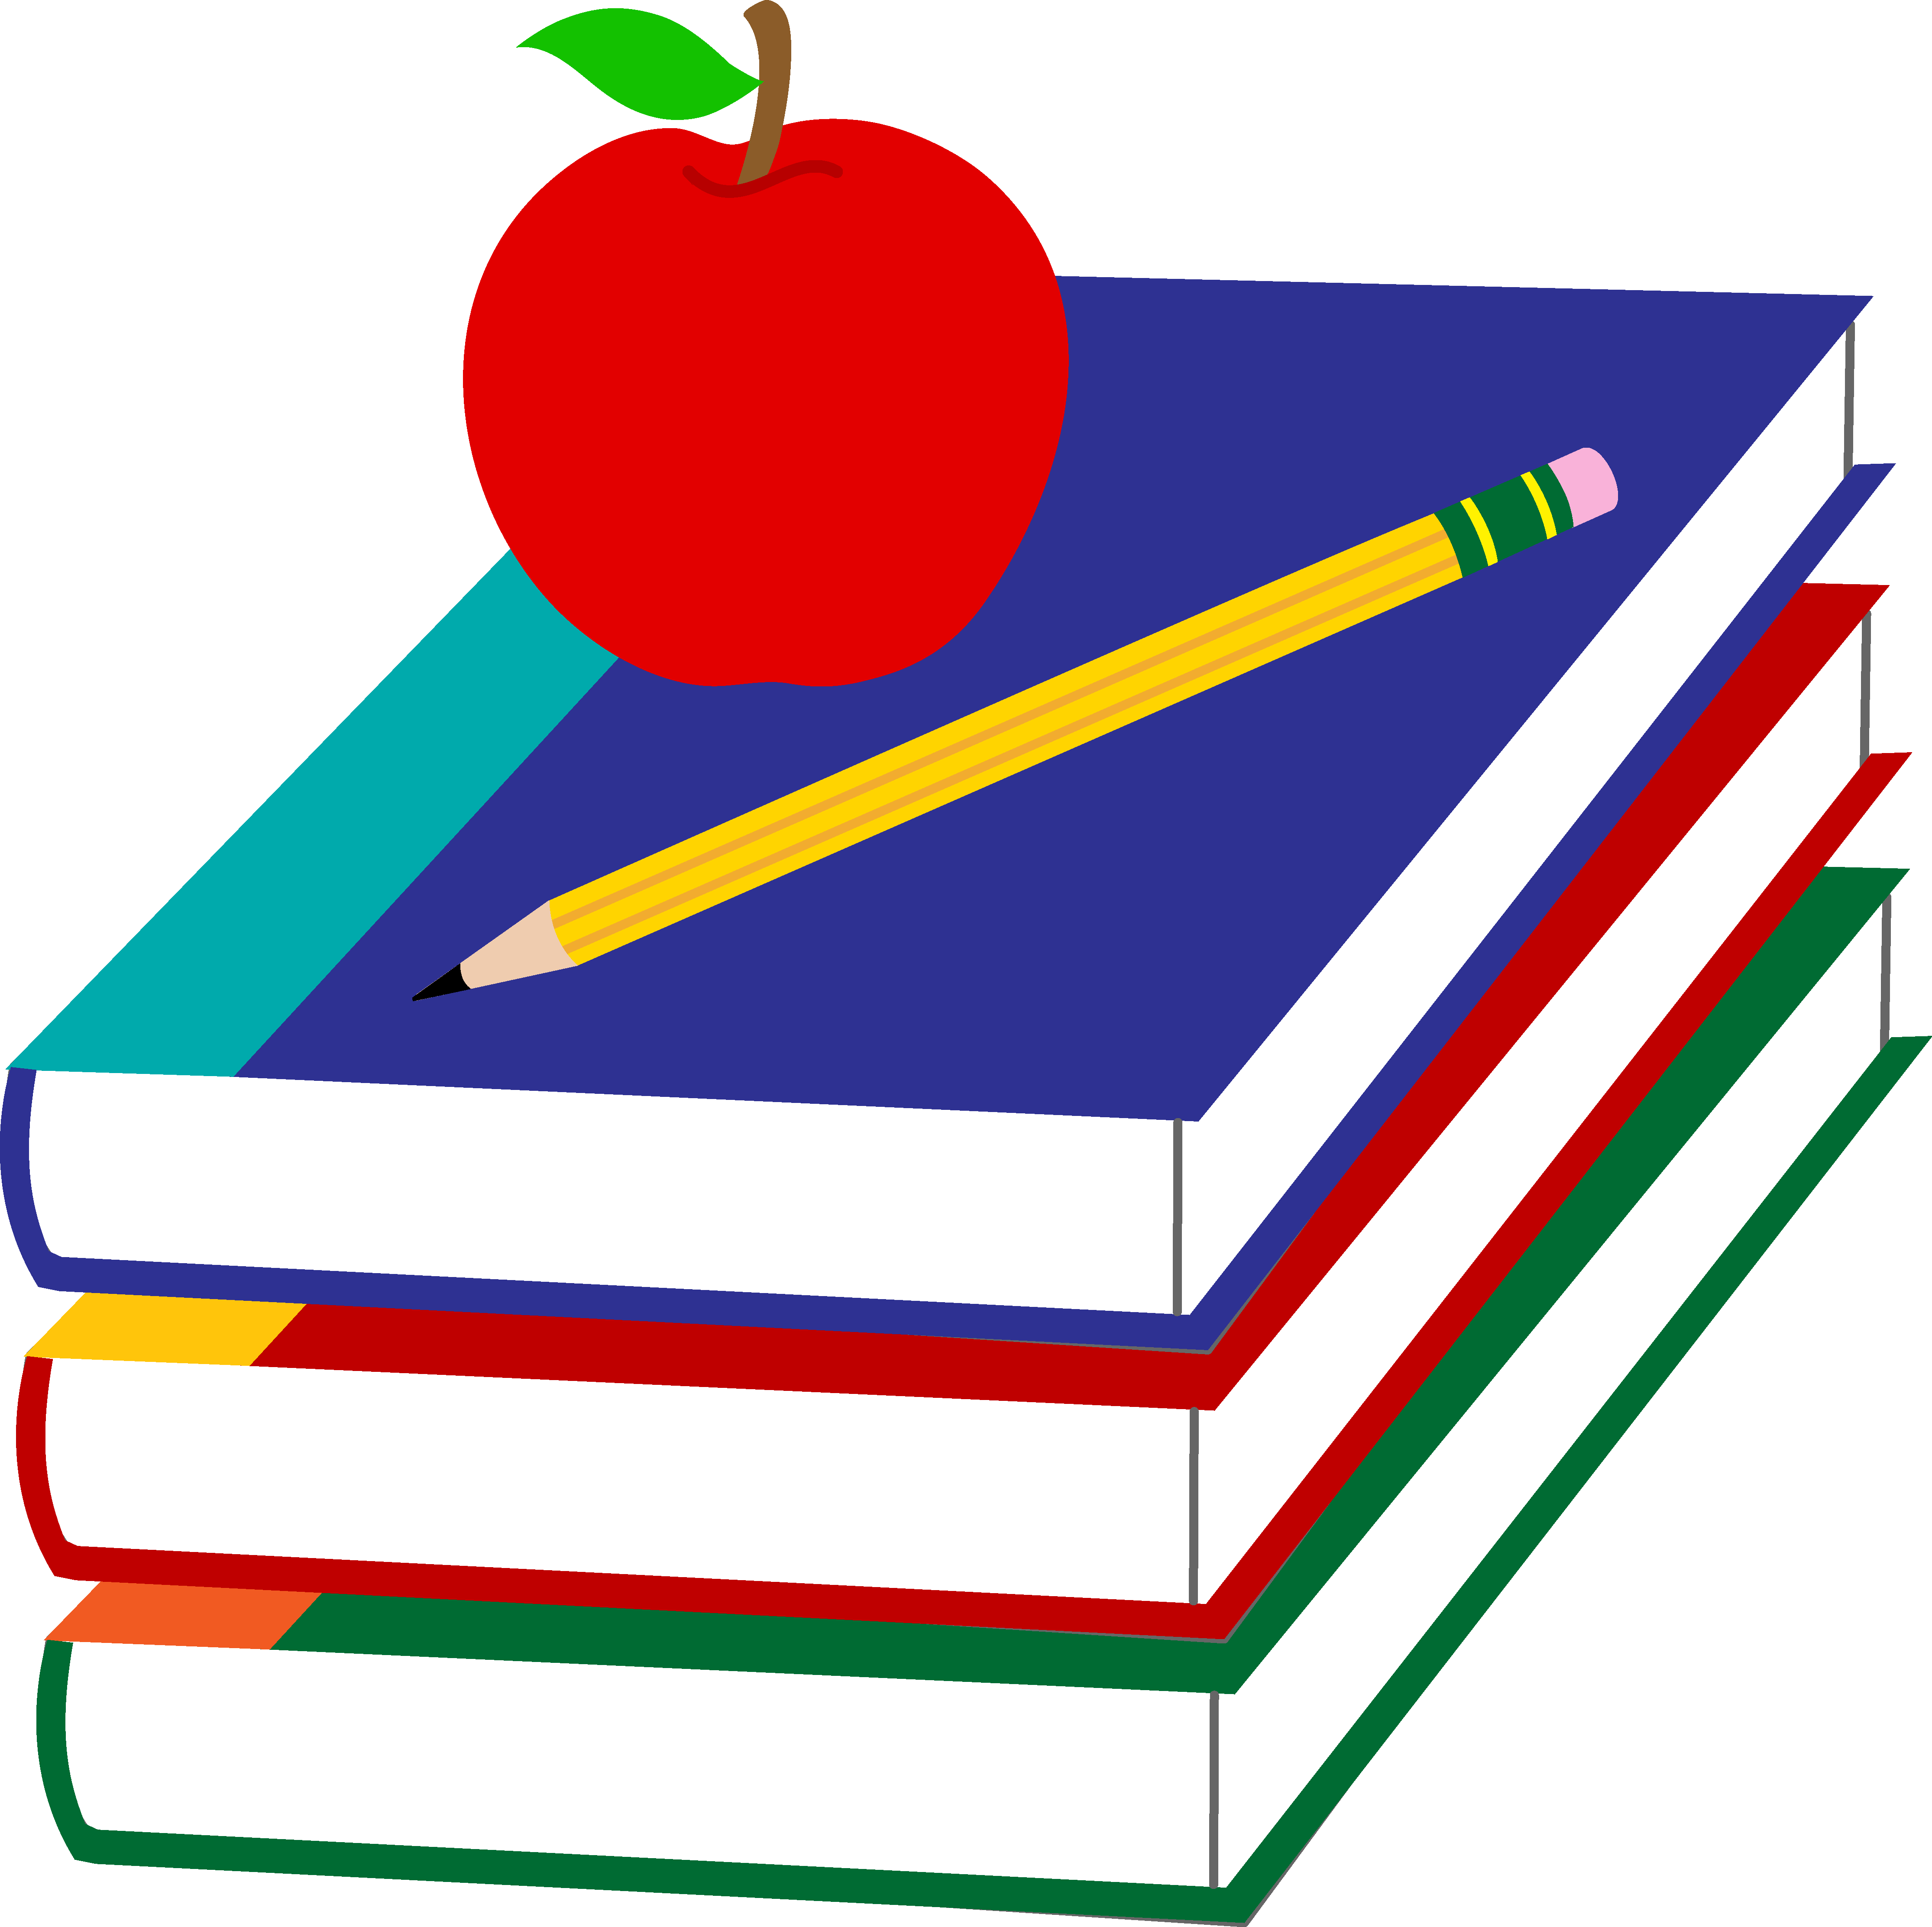 Free School Book Images, Download Free Clip Art, Free Clip.